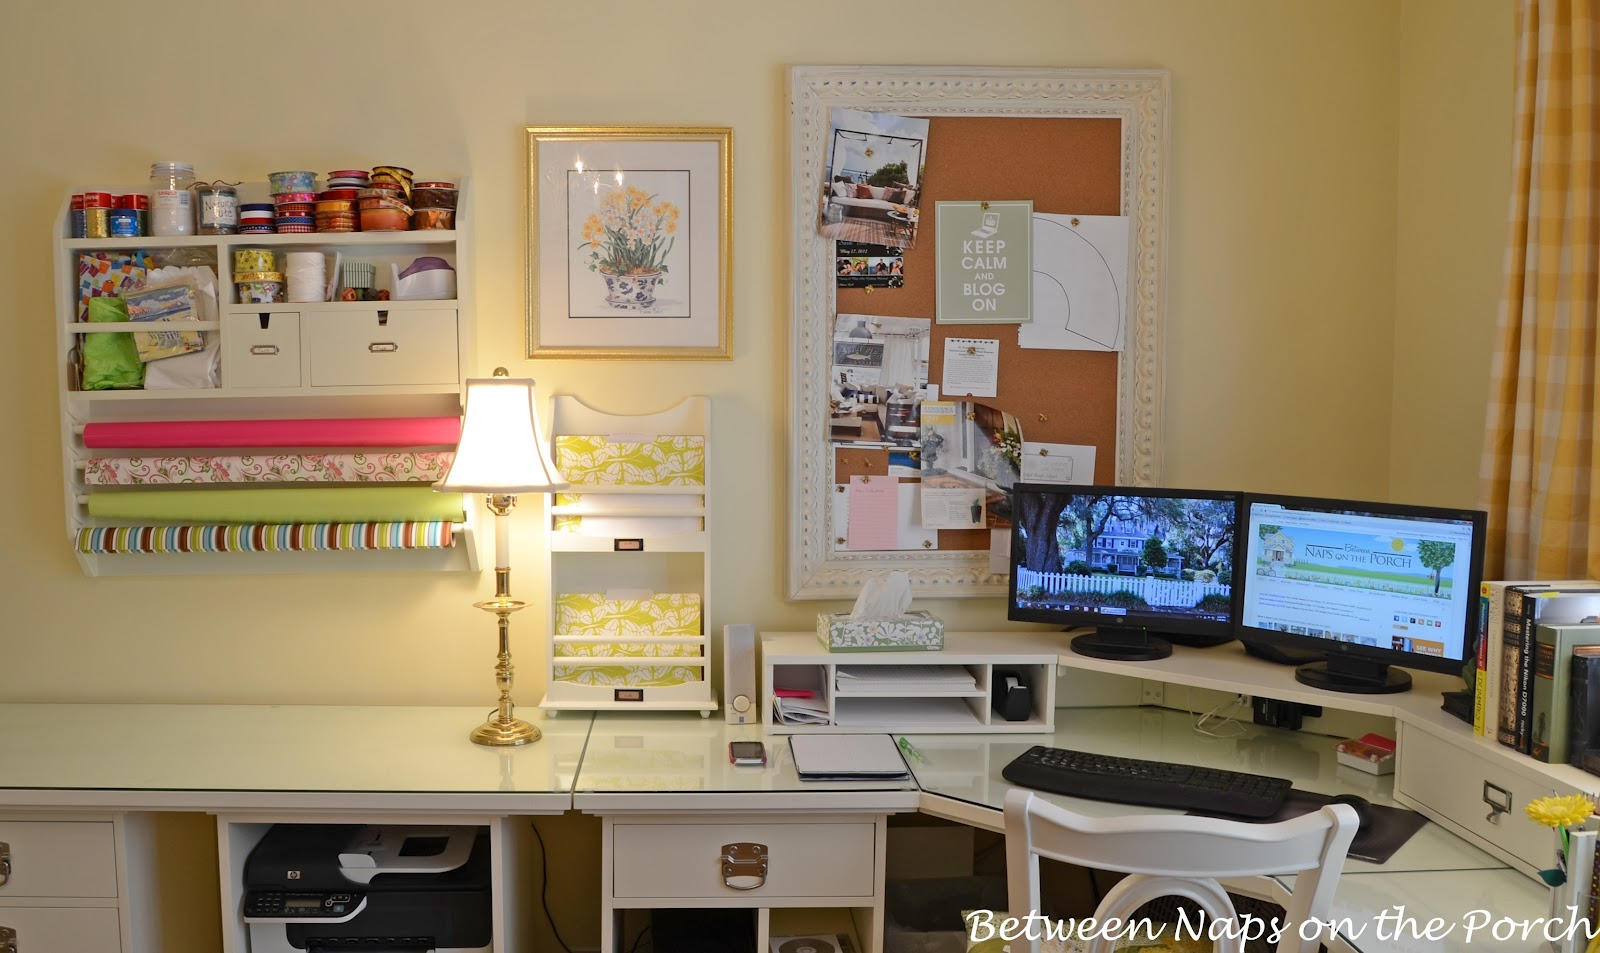 Office Hanging Organizer Which One Looks Best The Shorter With Picture Slot